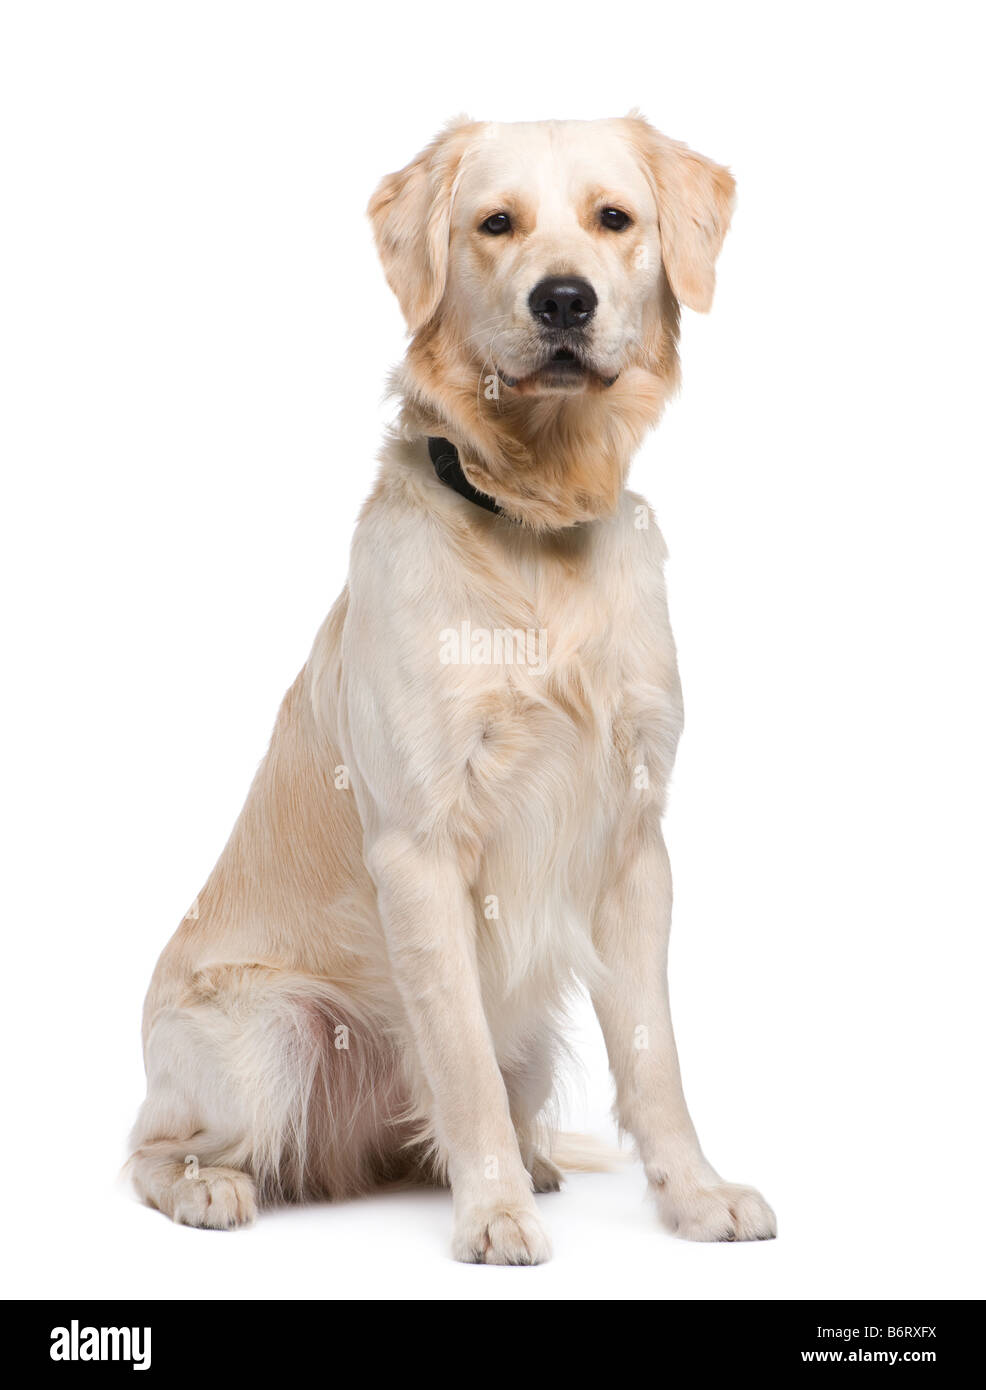 Golden Retriever 1 year in front of a white background - Stock Image